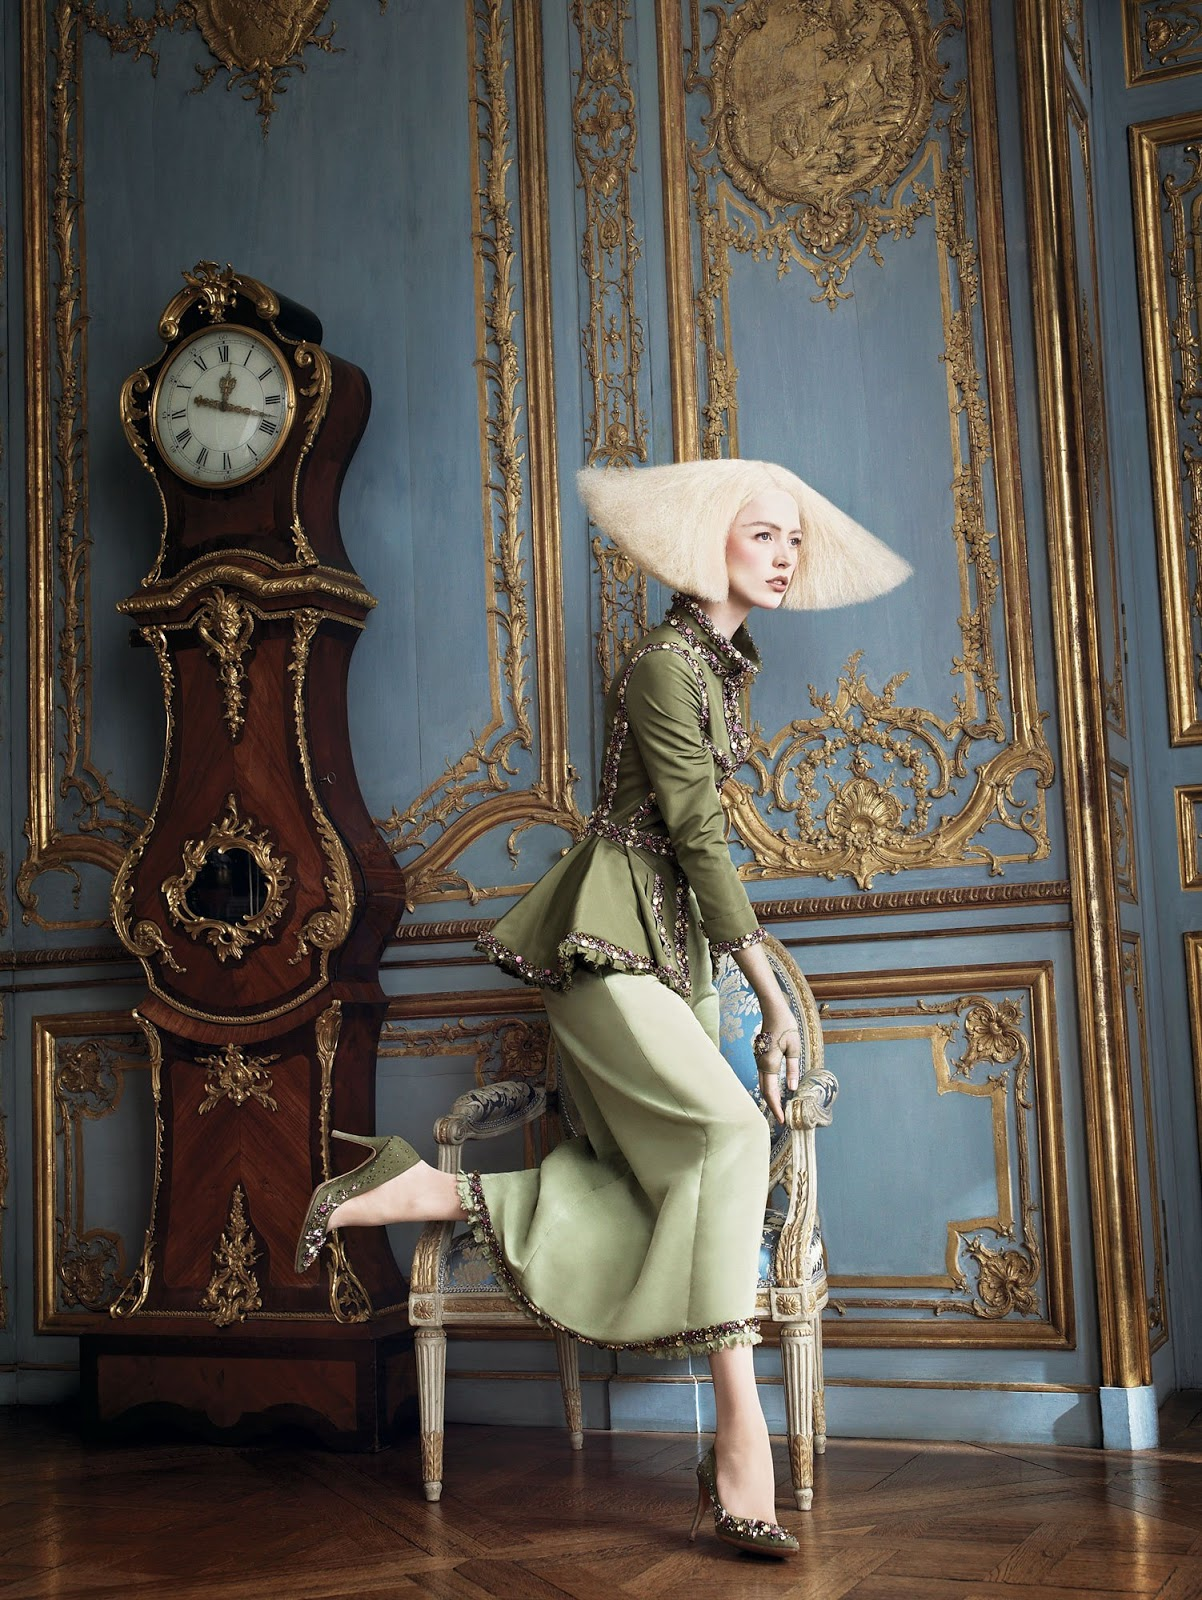 spring forward a flippen life photographed by david sims vogue october 2007